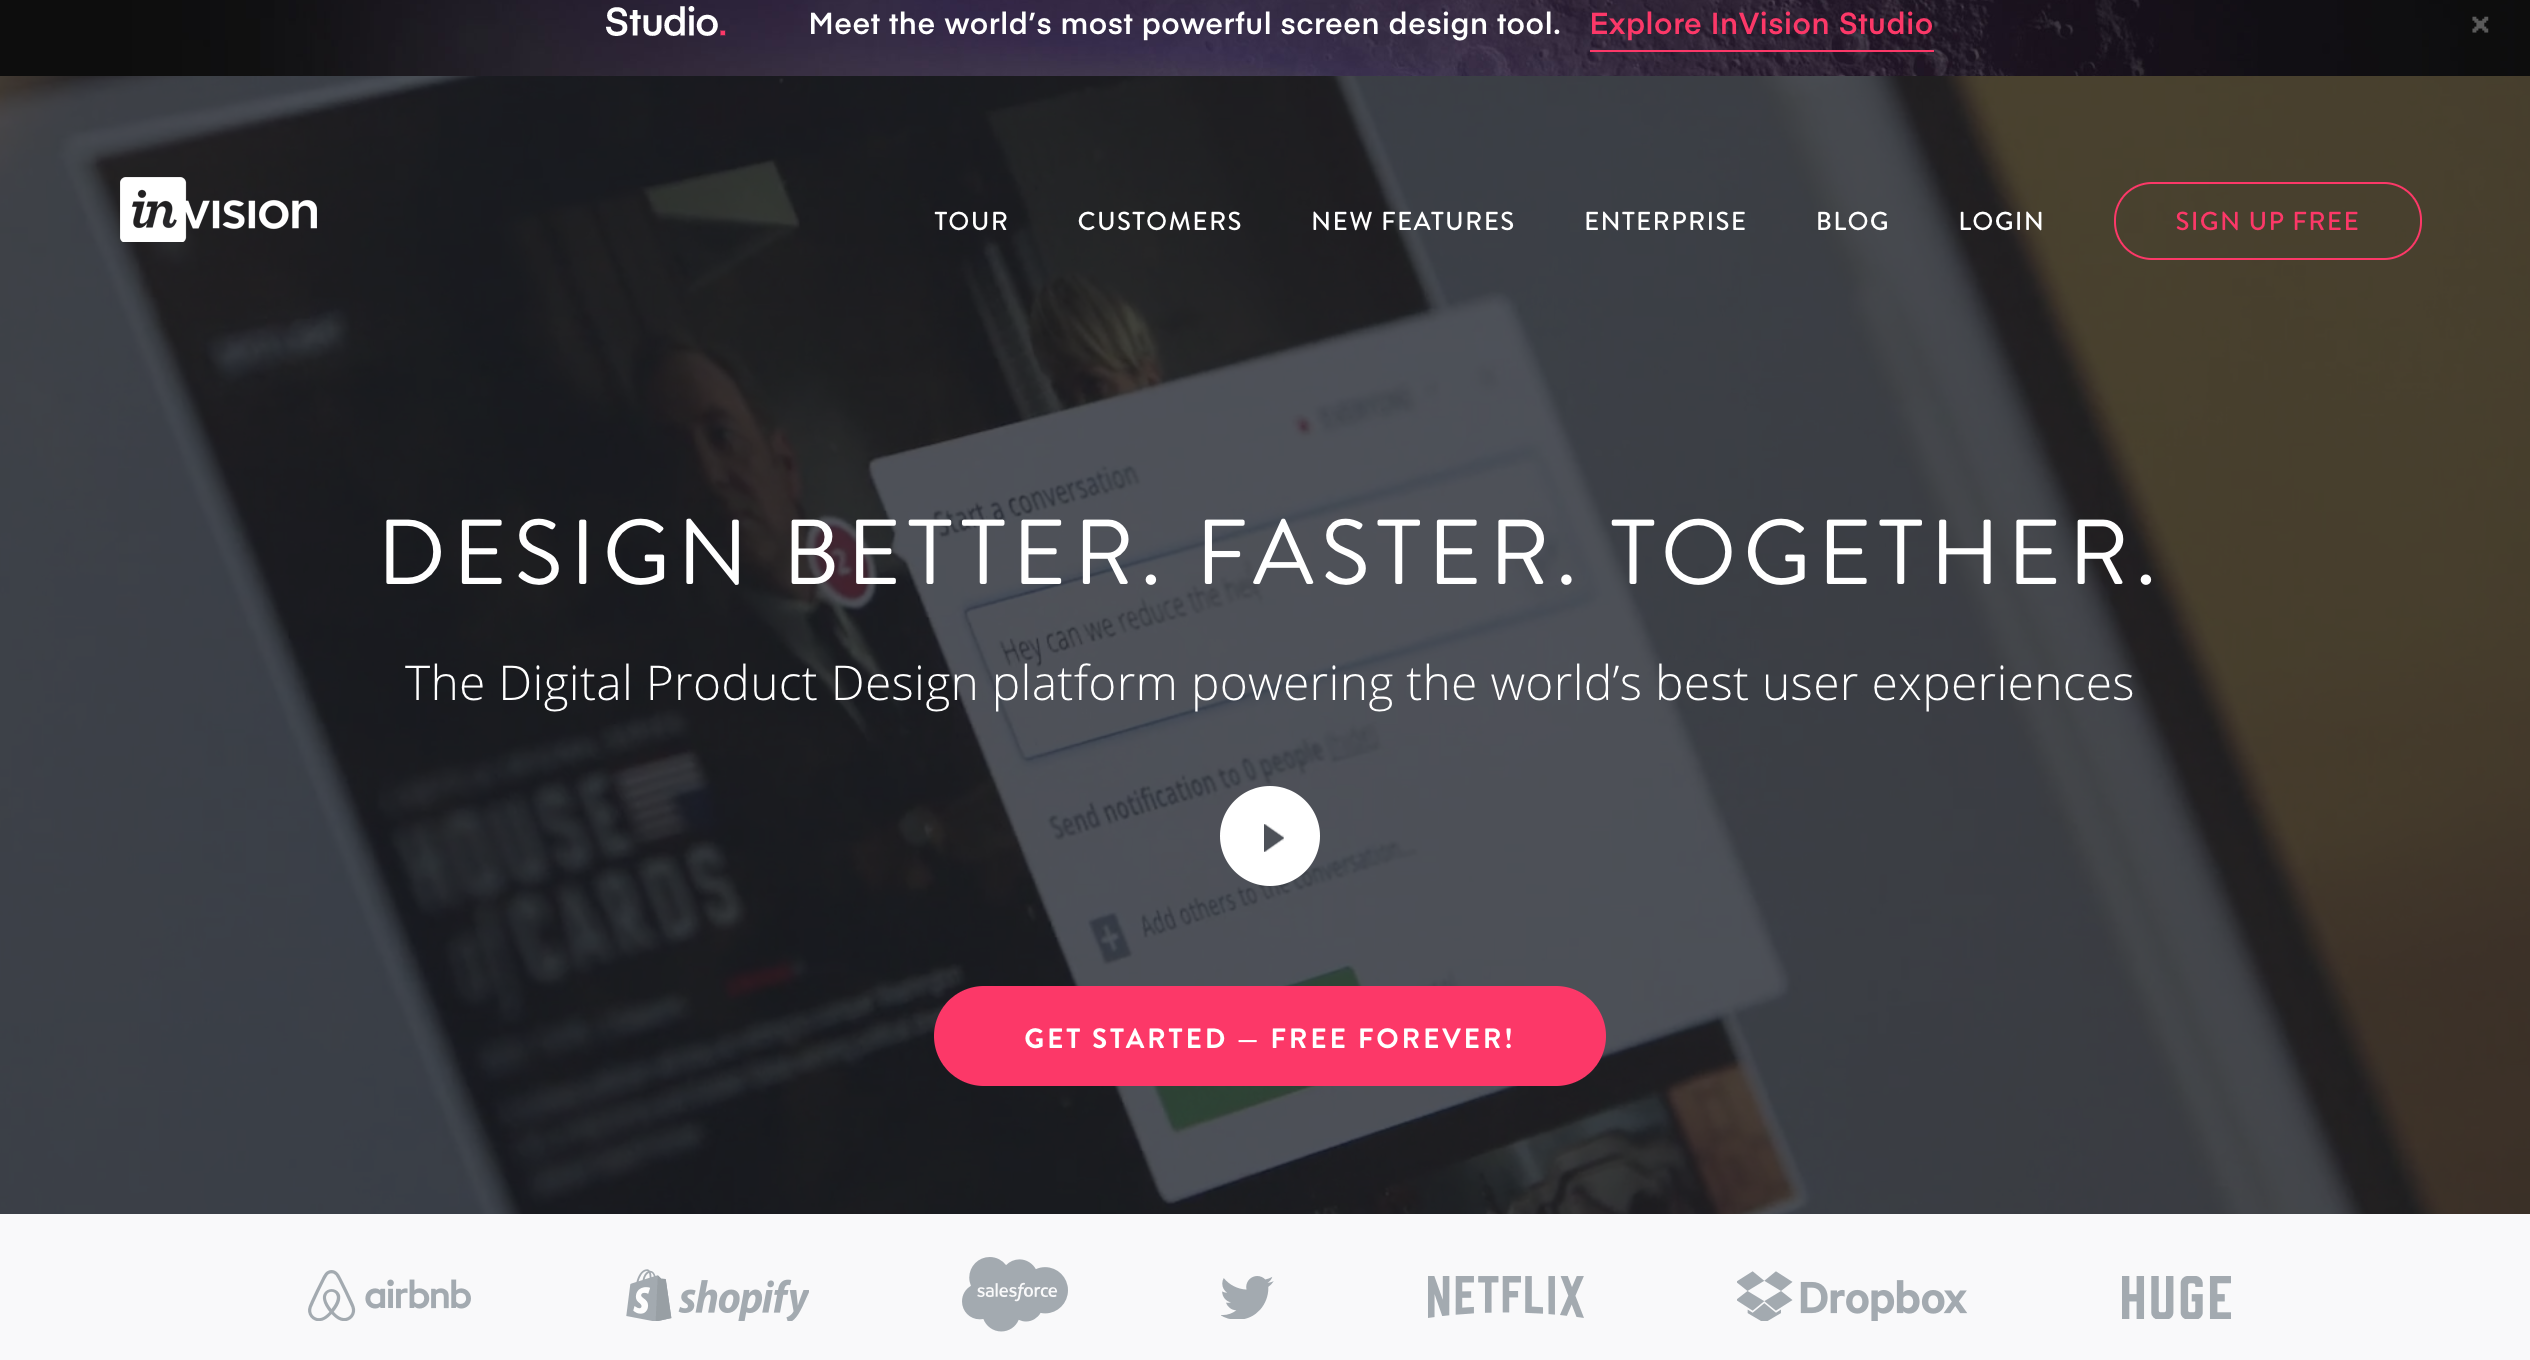 invision saas marketing example